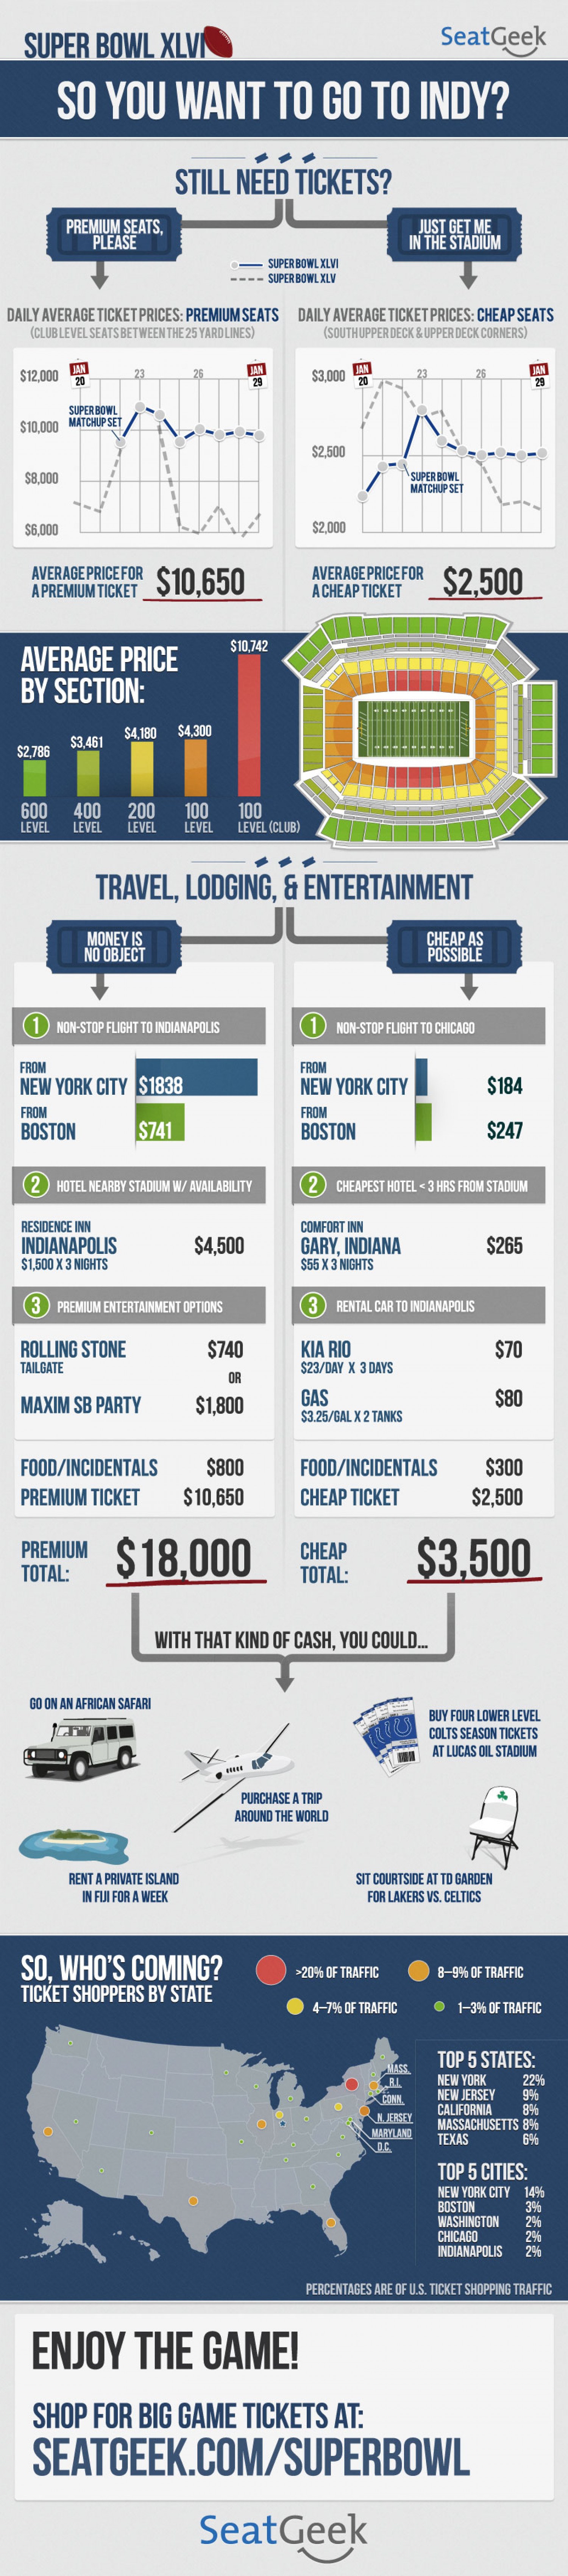 So You Want To Go To The Super Bowl... Infographic